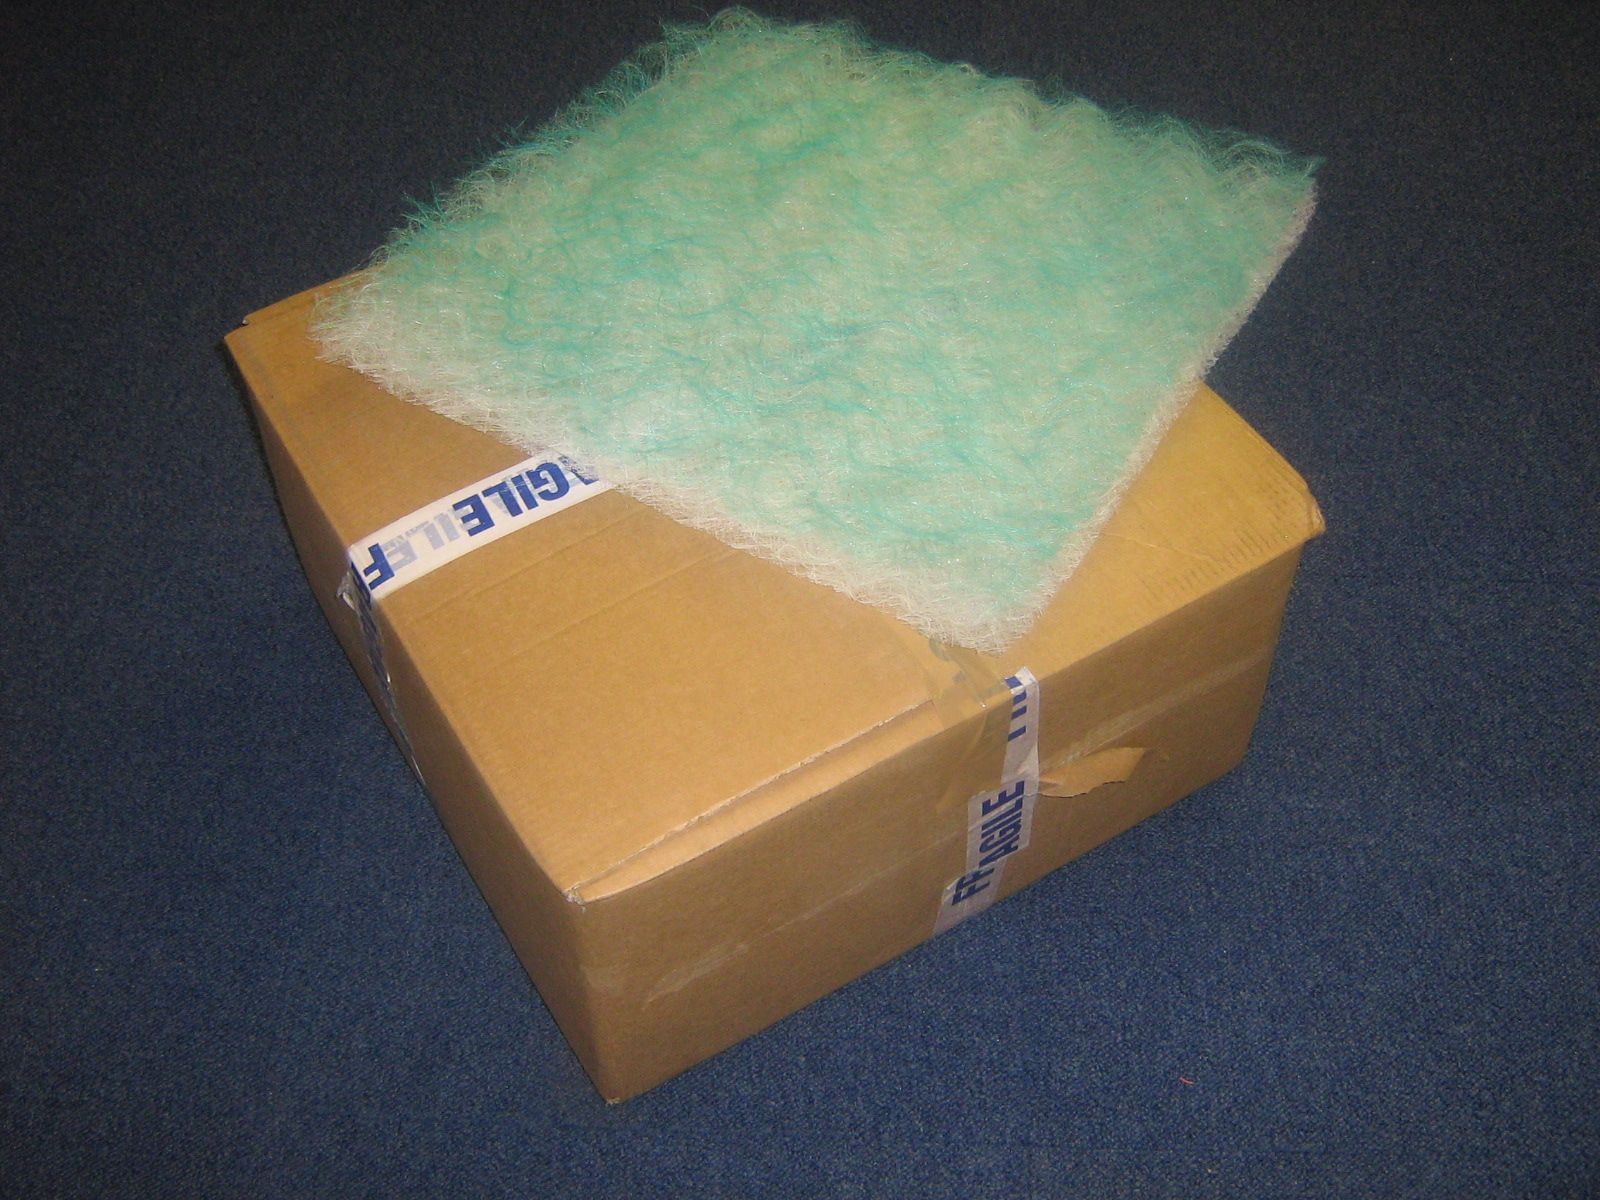 DISPOSABLE GREASE FILTER PADS for Extraction Canopy-Box 50 & GREASE FILTER PADS for Extraction Canopy-Box 50